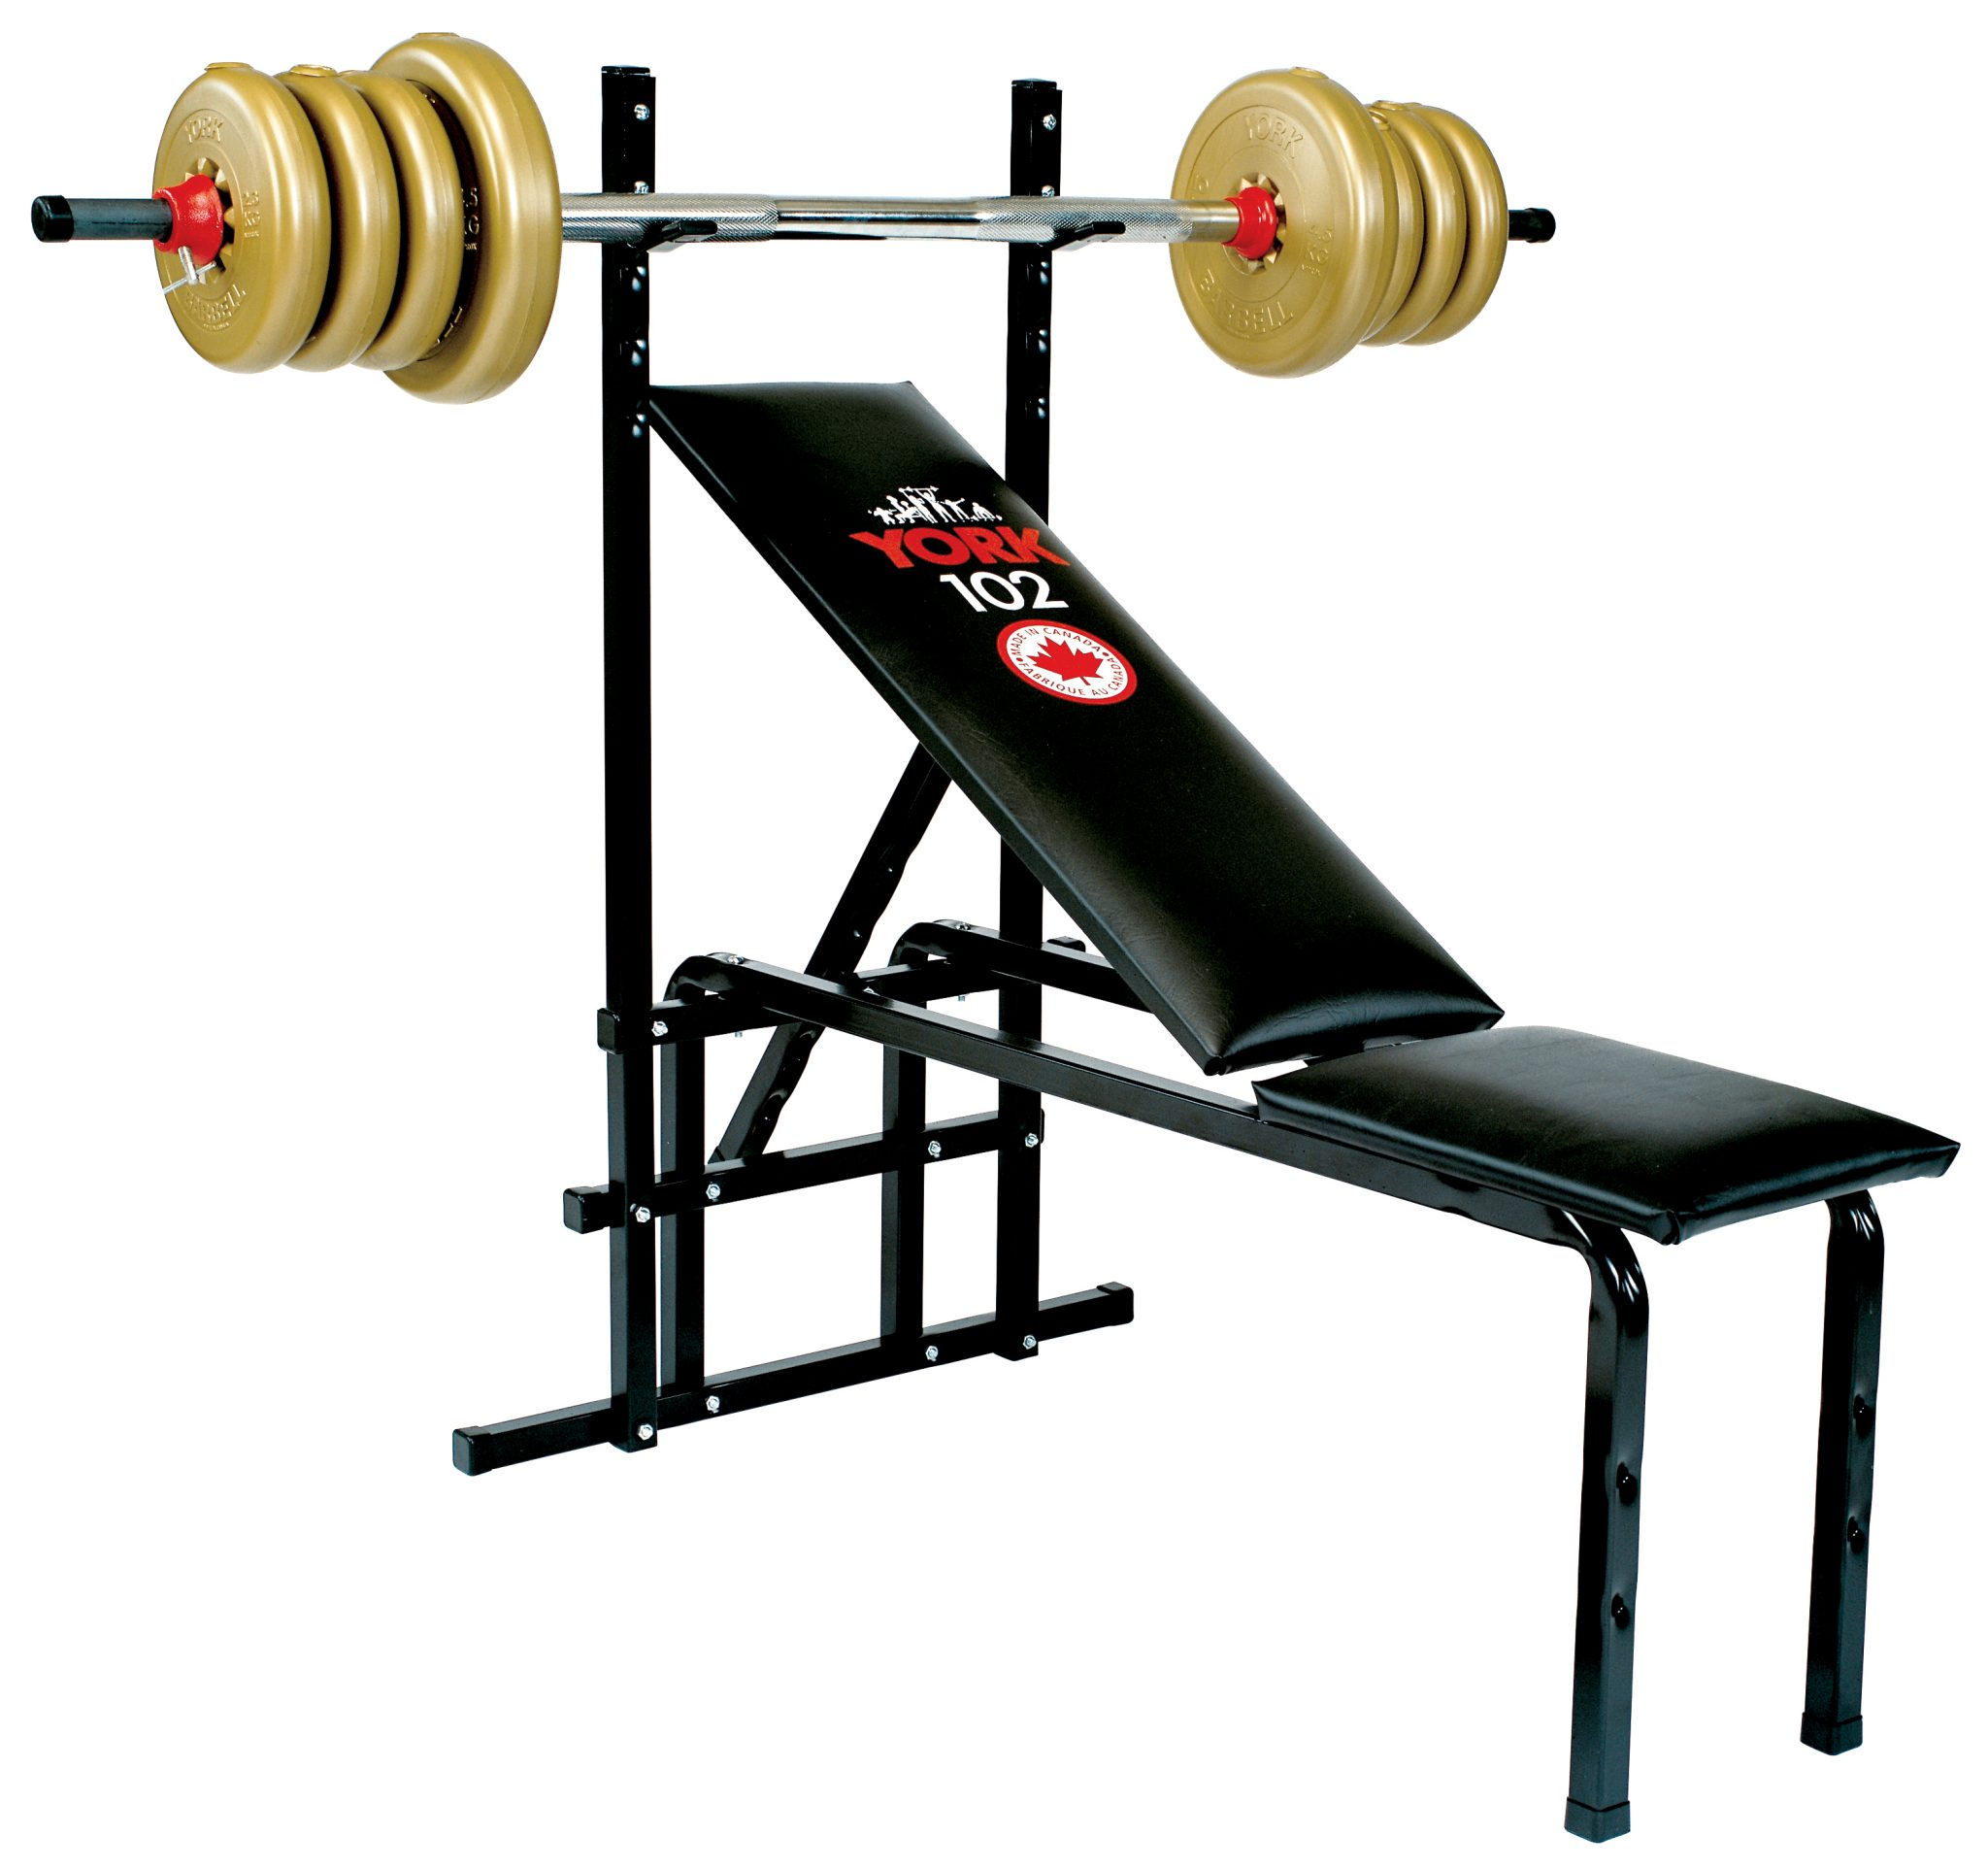 102 Adjustable Bench Press Machine | Home Gym Equipment